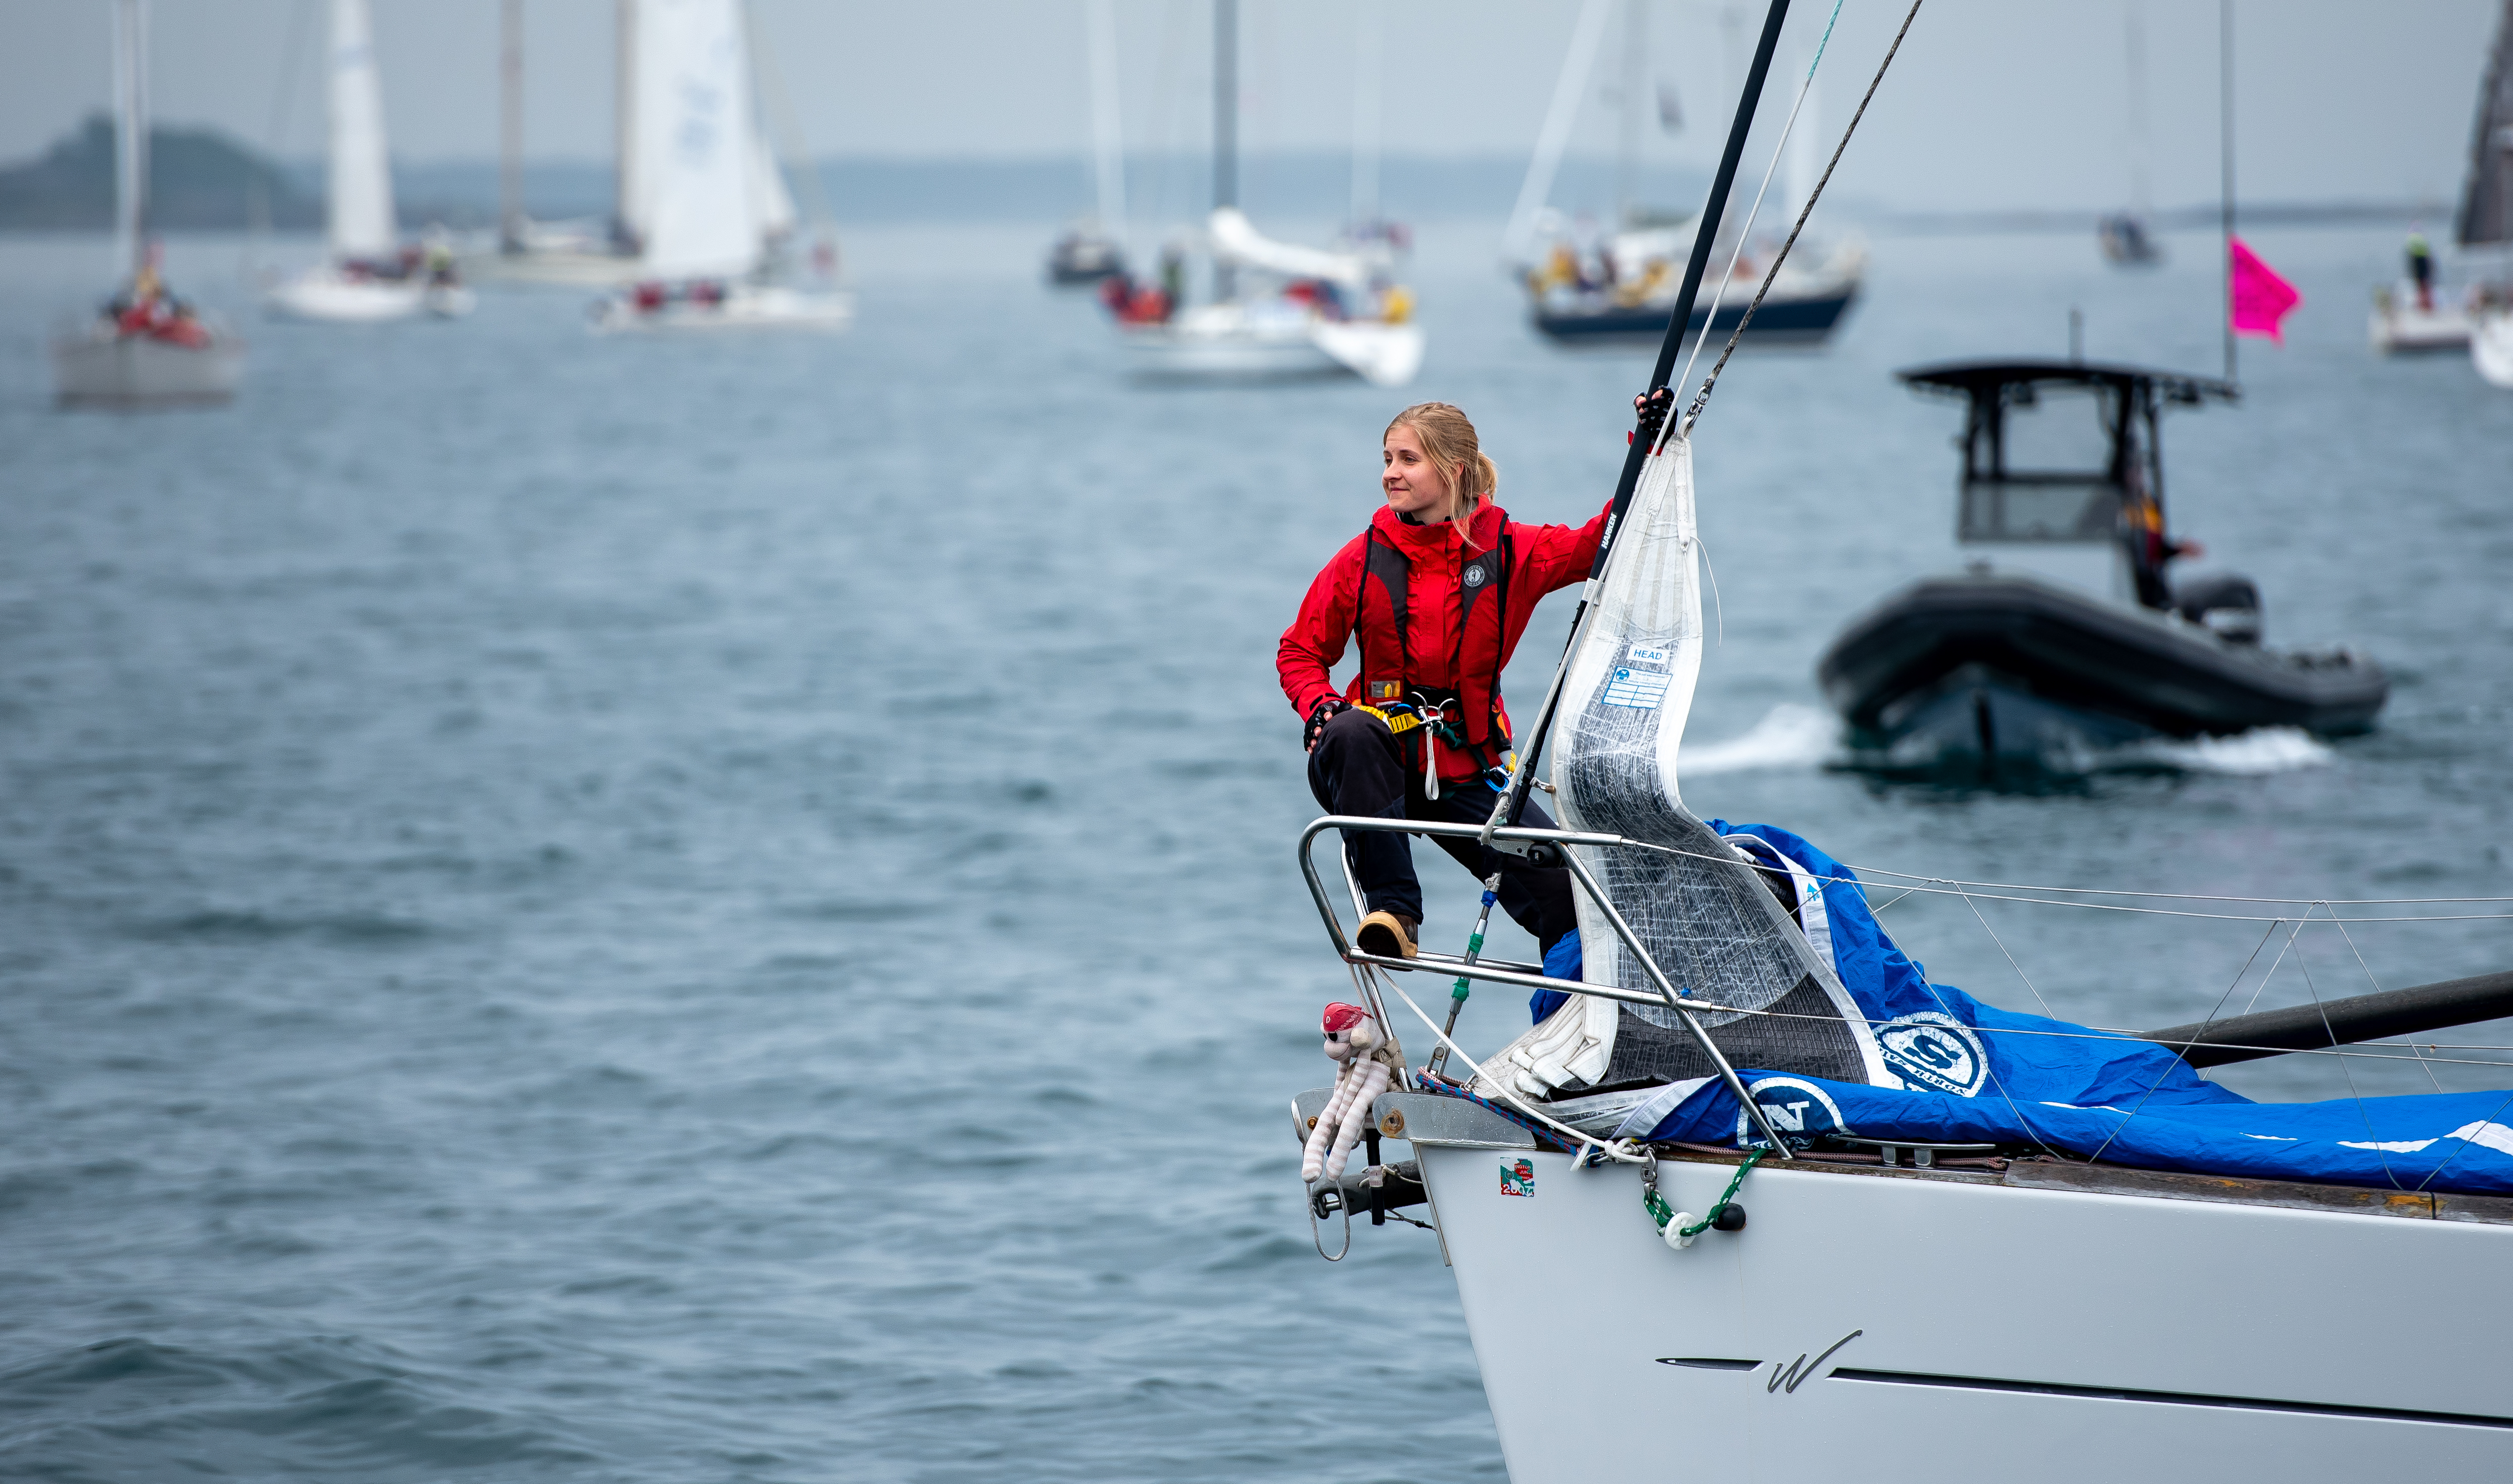 Swiftsure-25-May-2019-RMS-Media-by-Rob-Porter-32